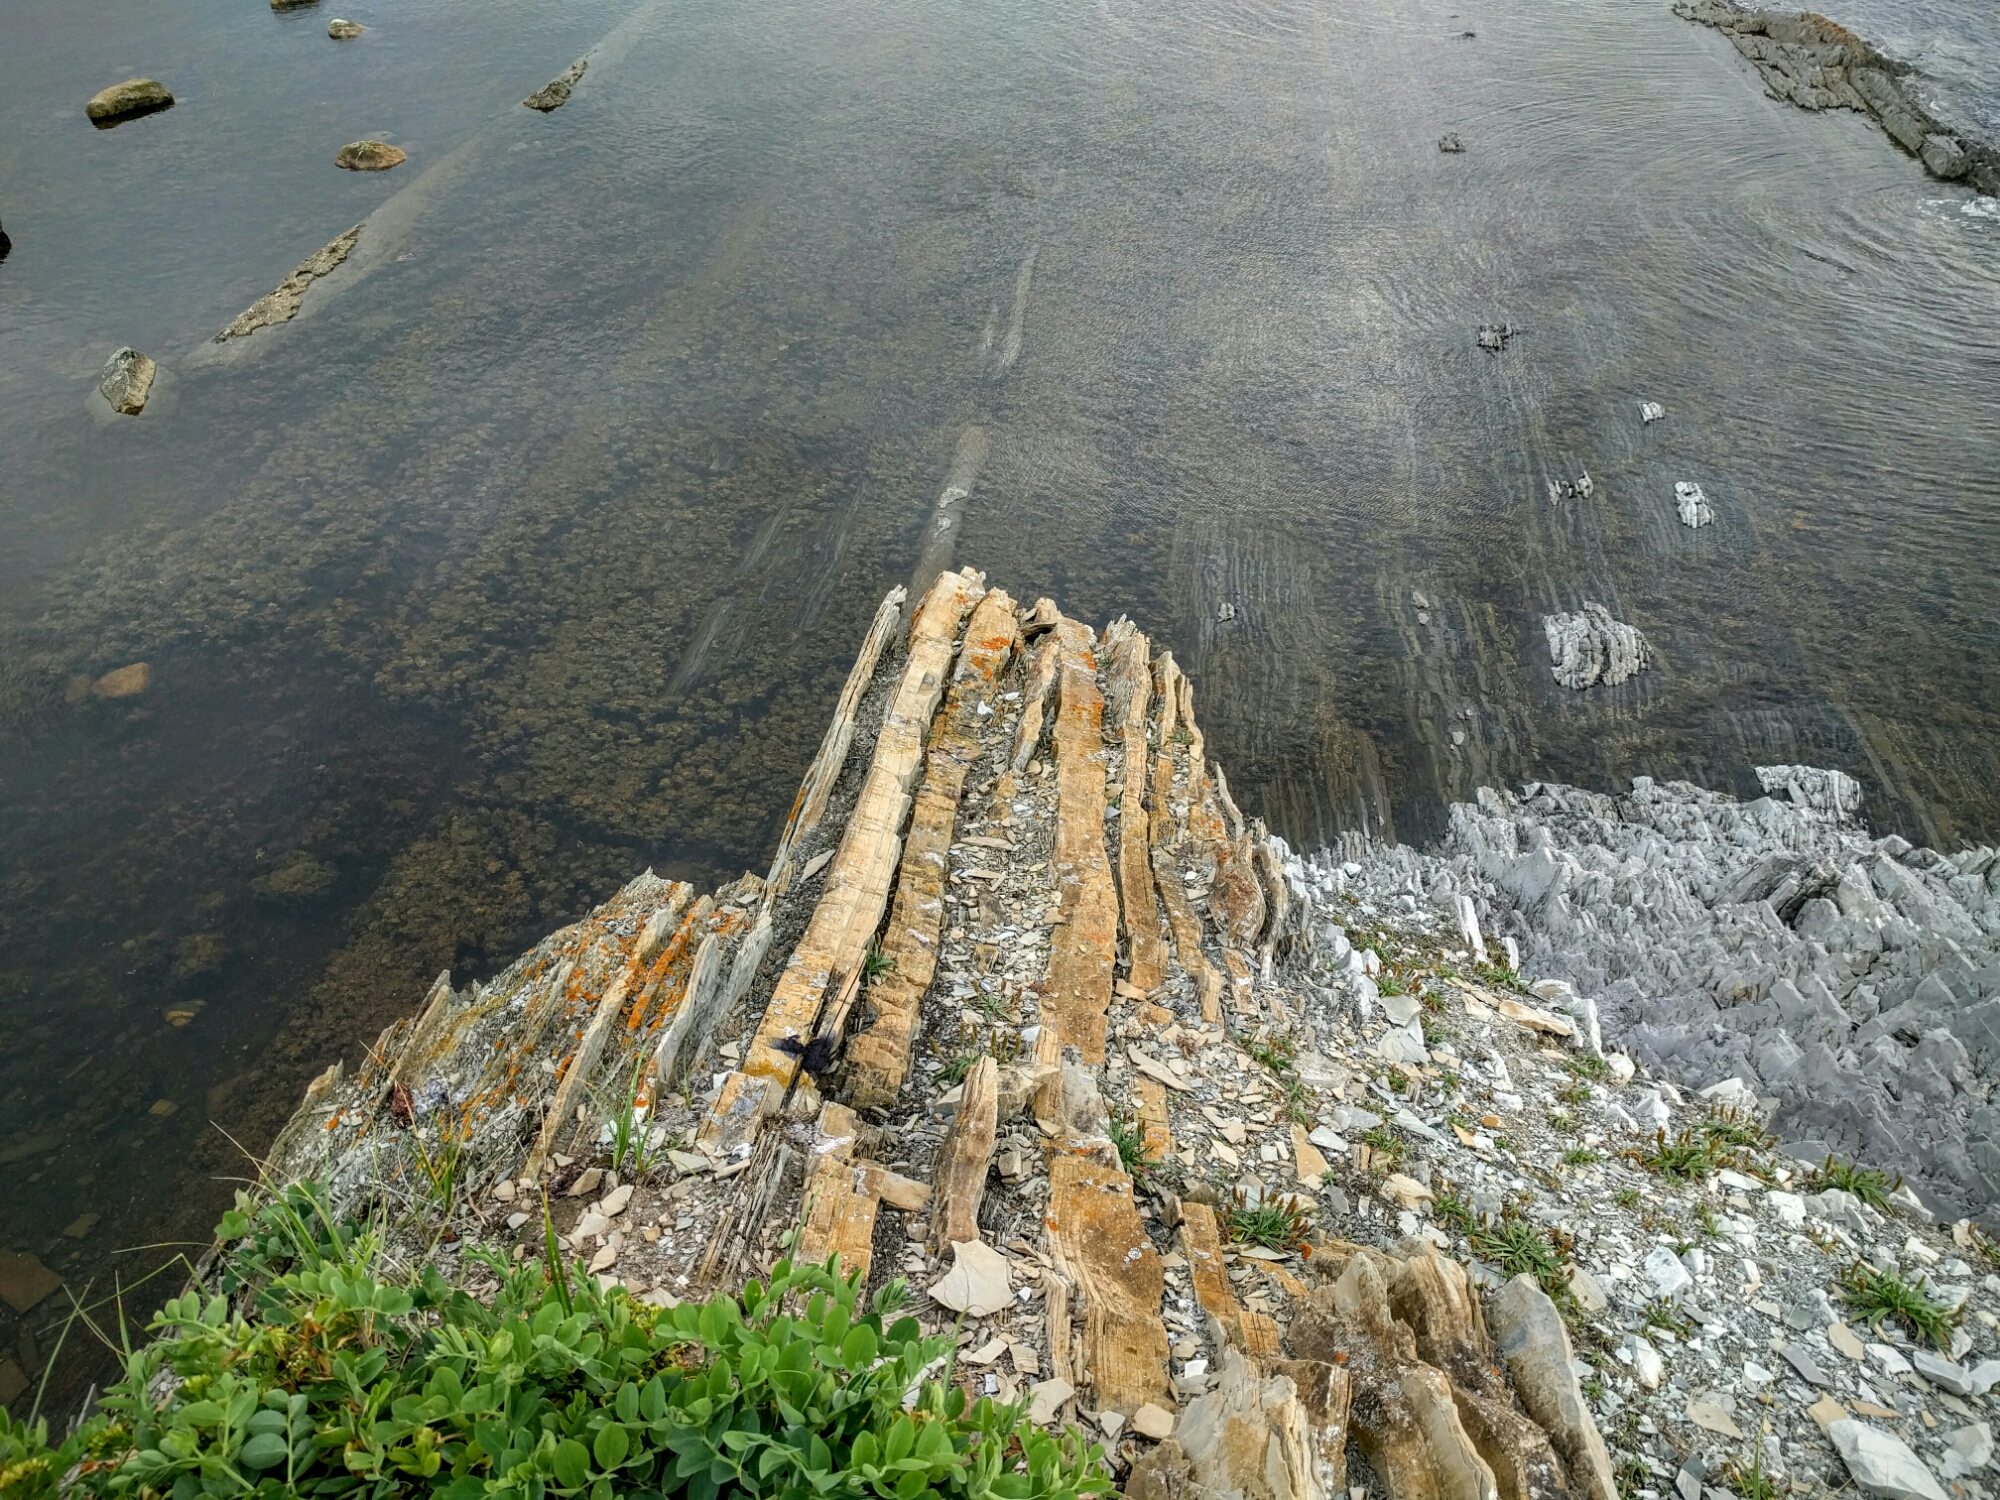 The tide rolls in and covers the exposed rock cliffs.